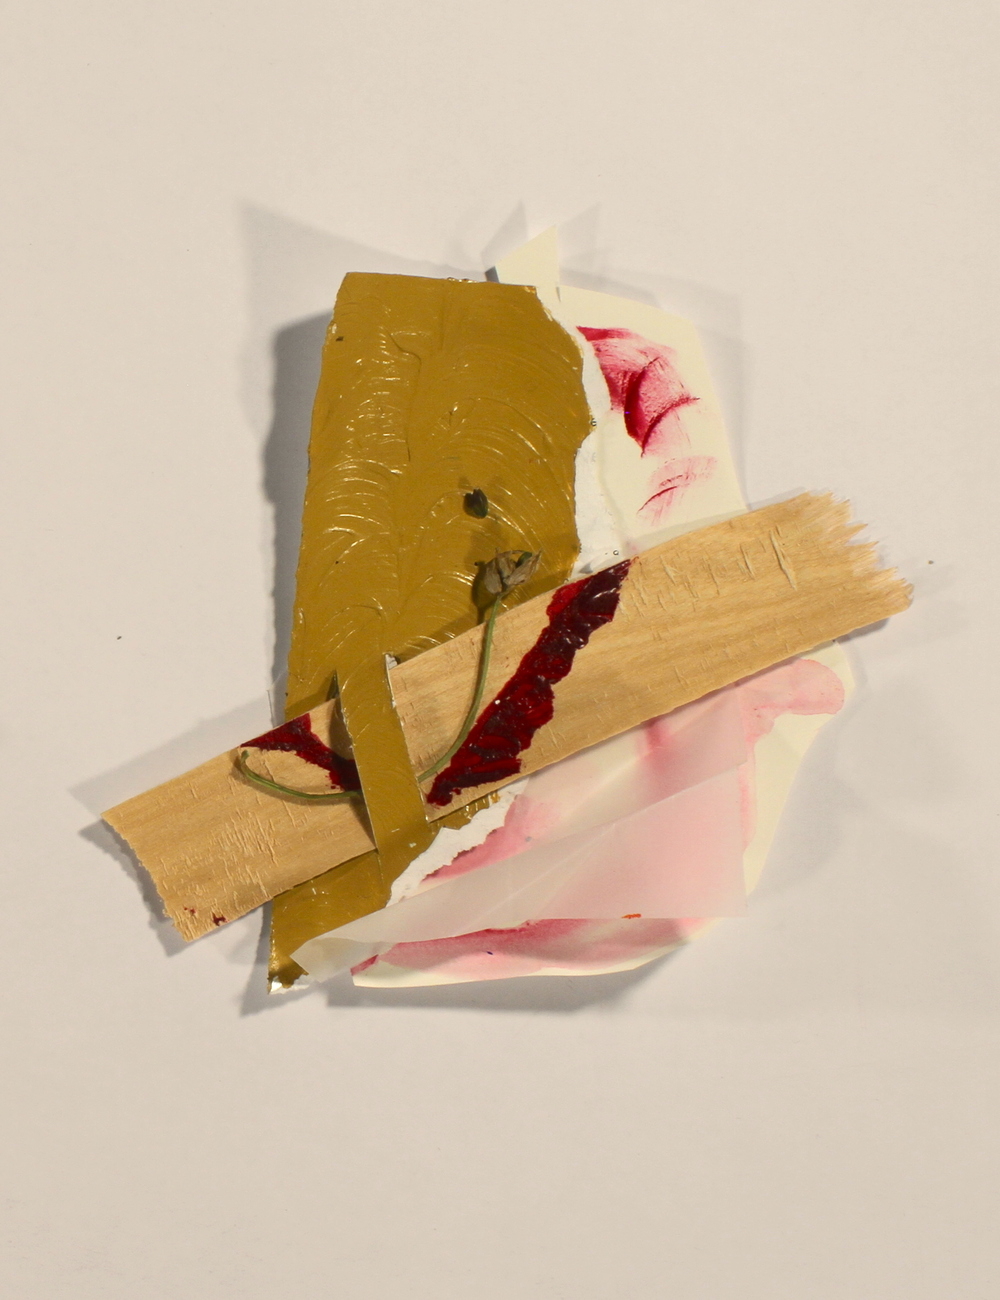 Tenderness  2014, wood, acrylic, vellum, paper, flower, 9in x 10in